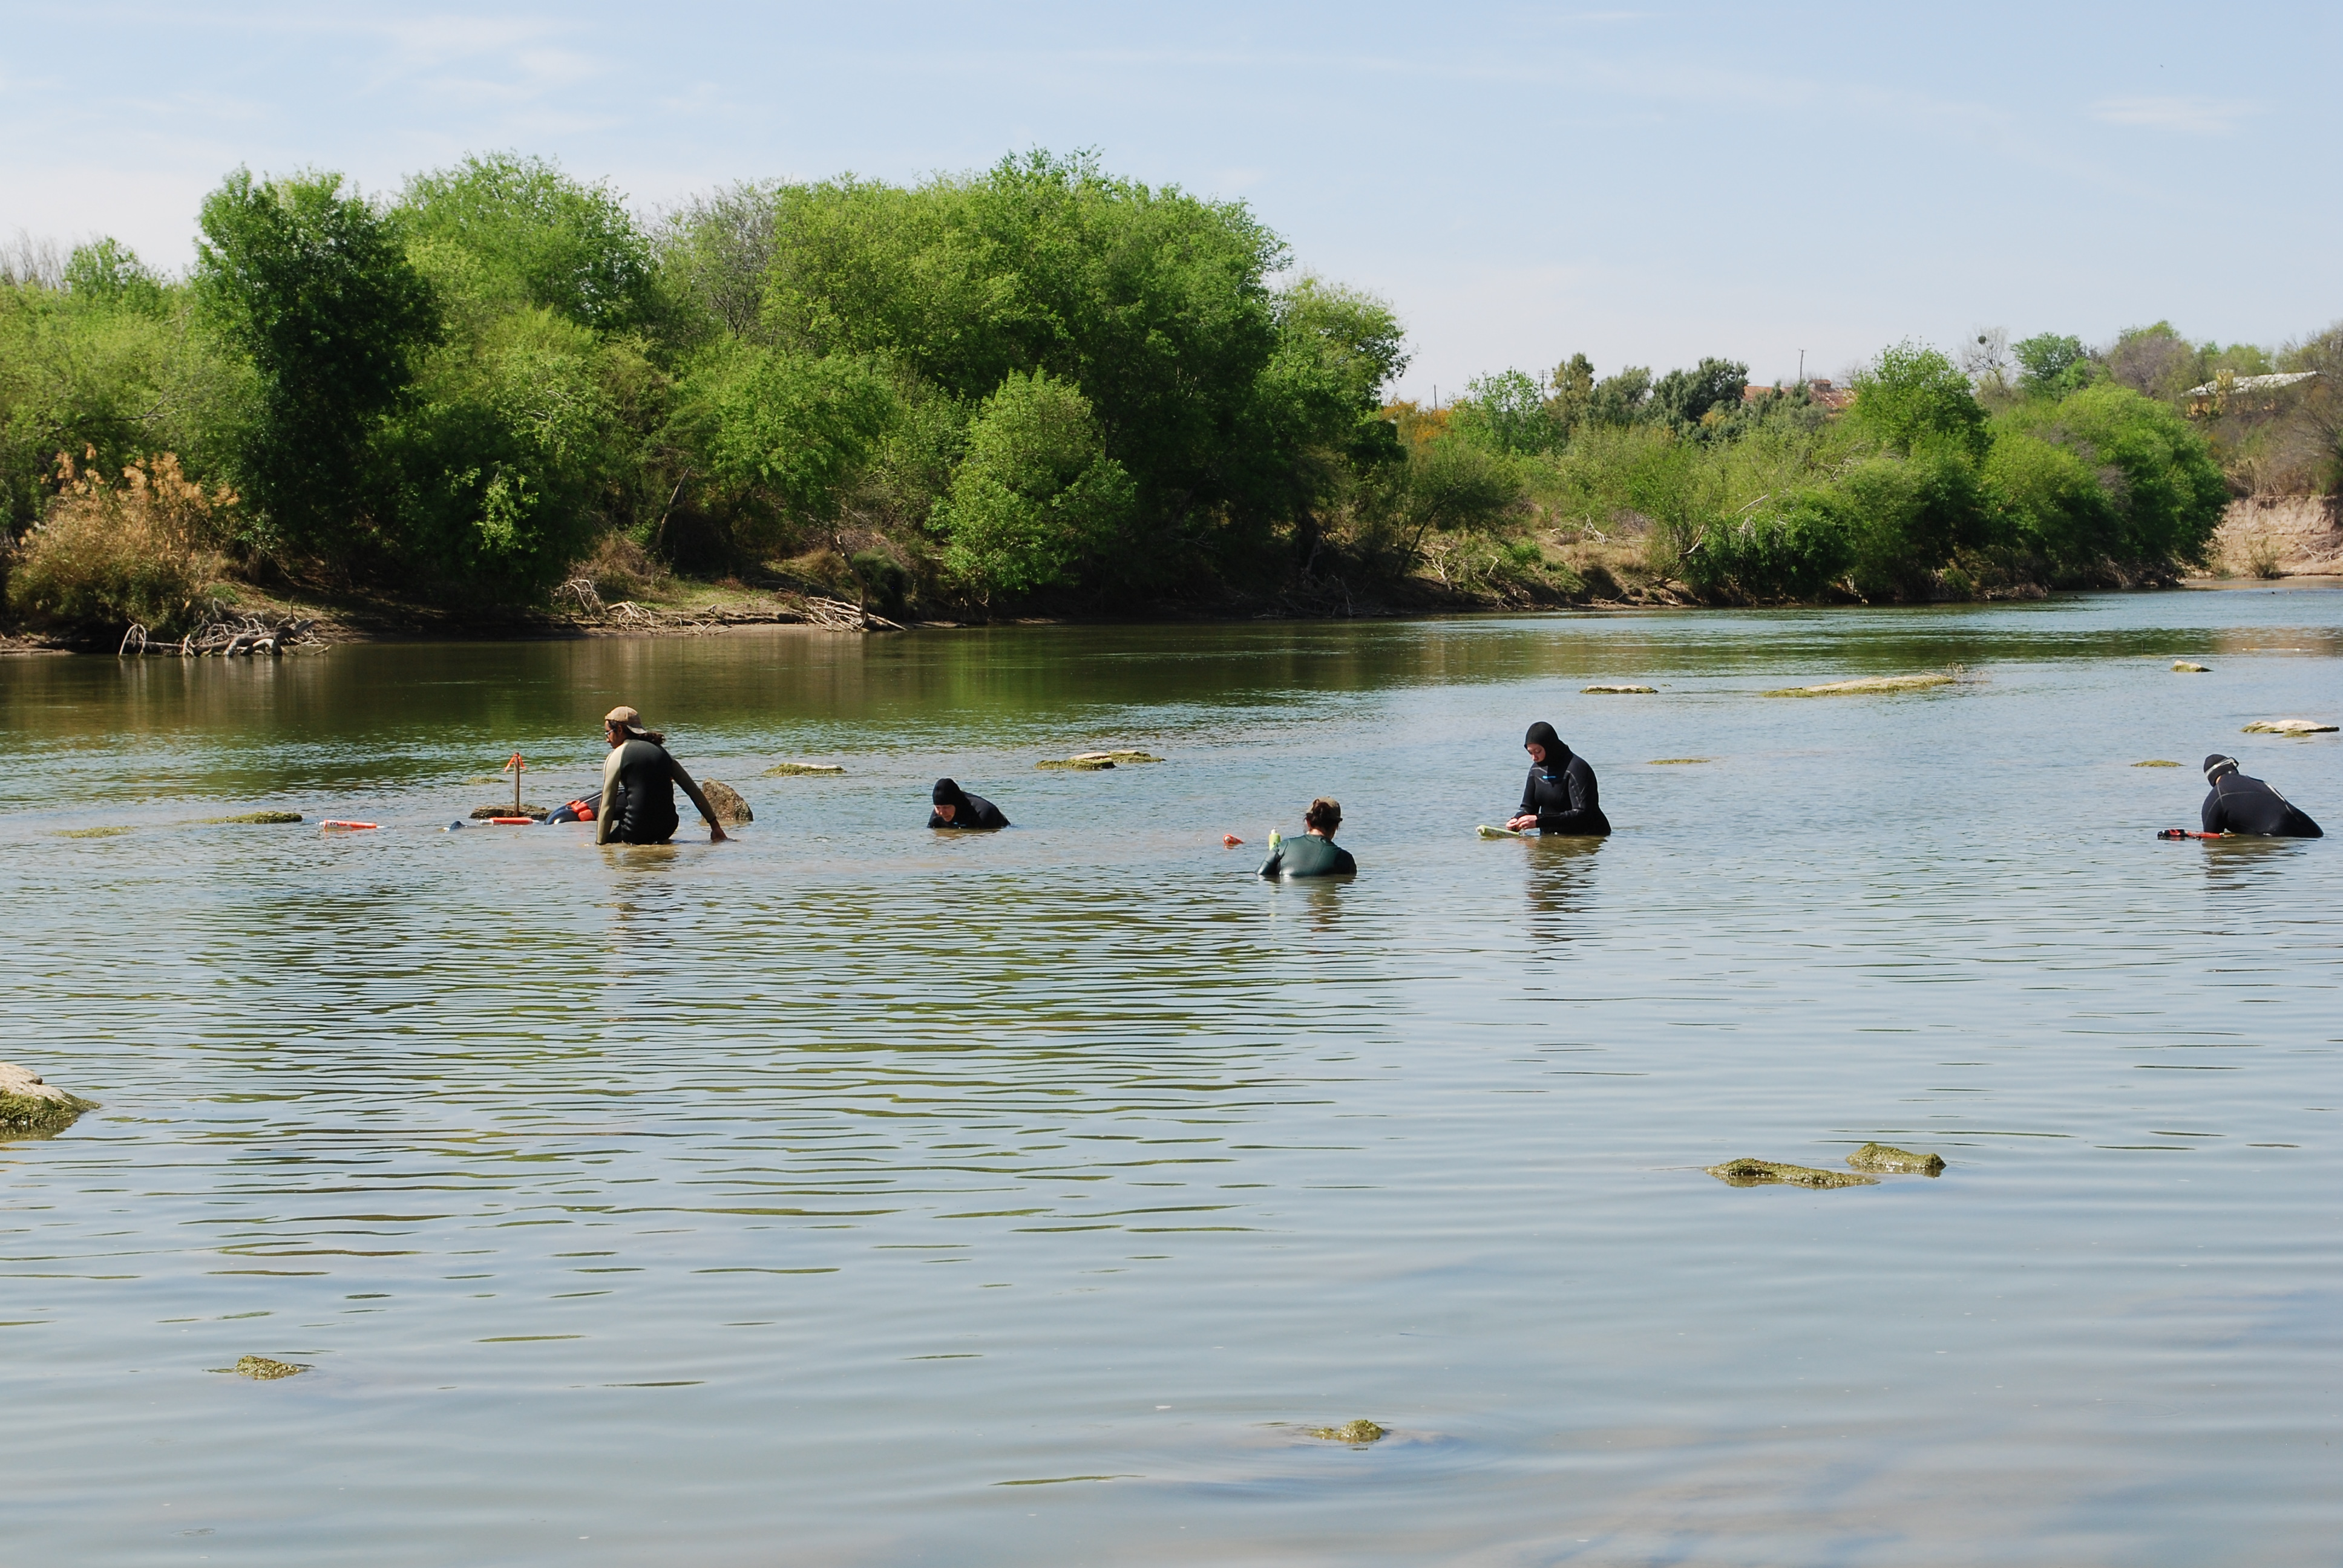 A group of researchers snorkeling in the Rio Grande river to find Texas Hornshell mussels.